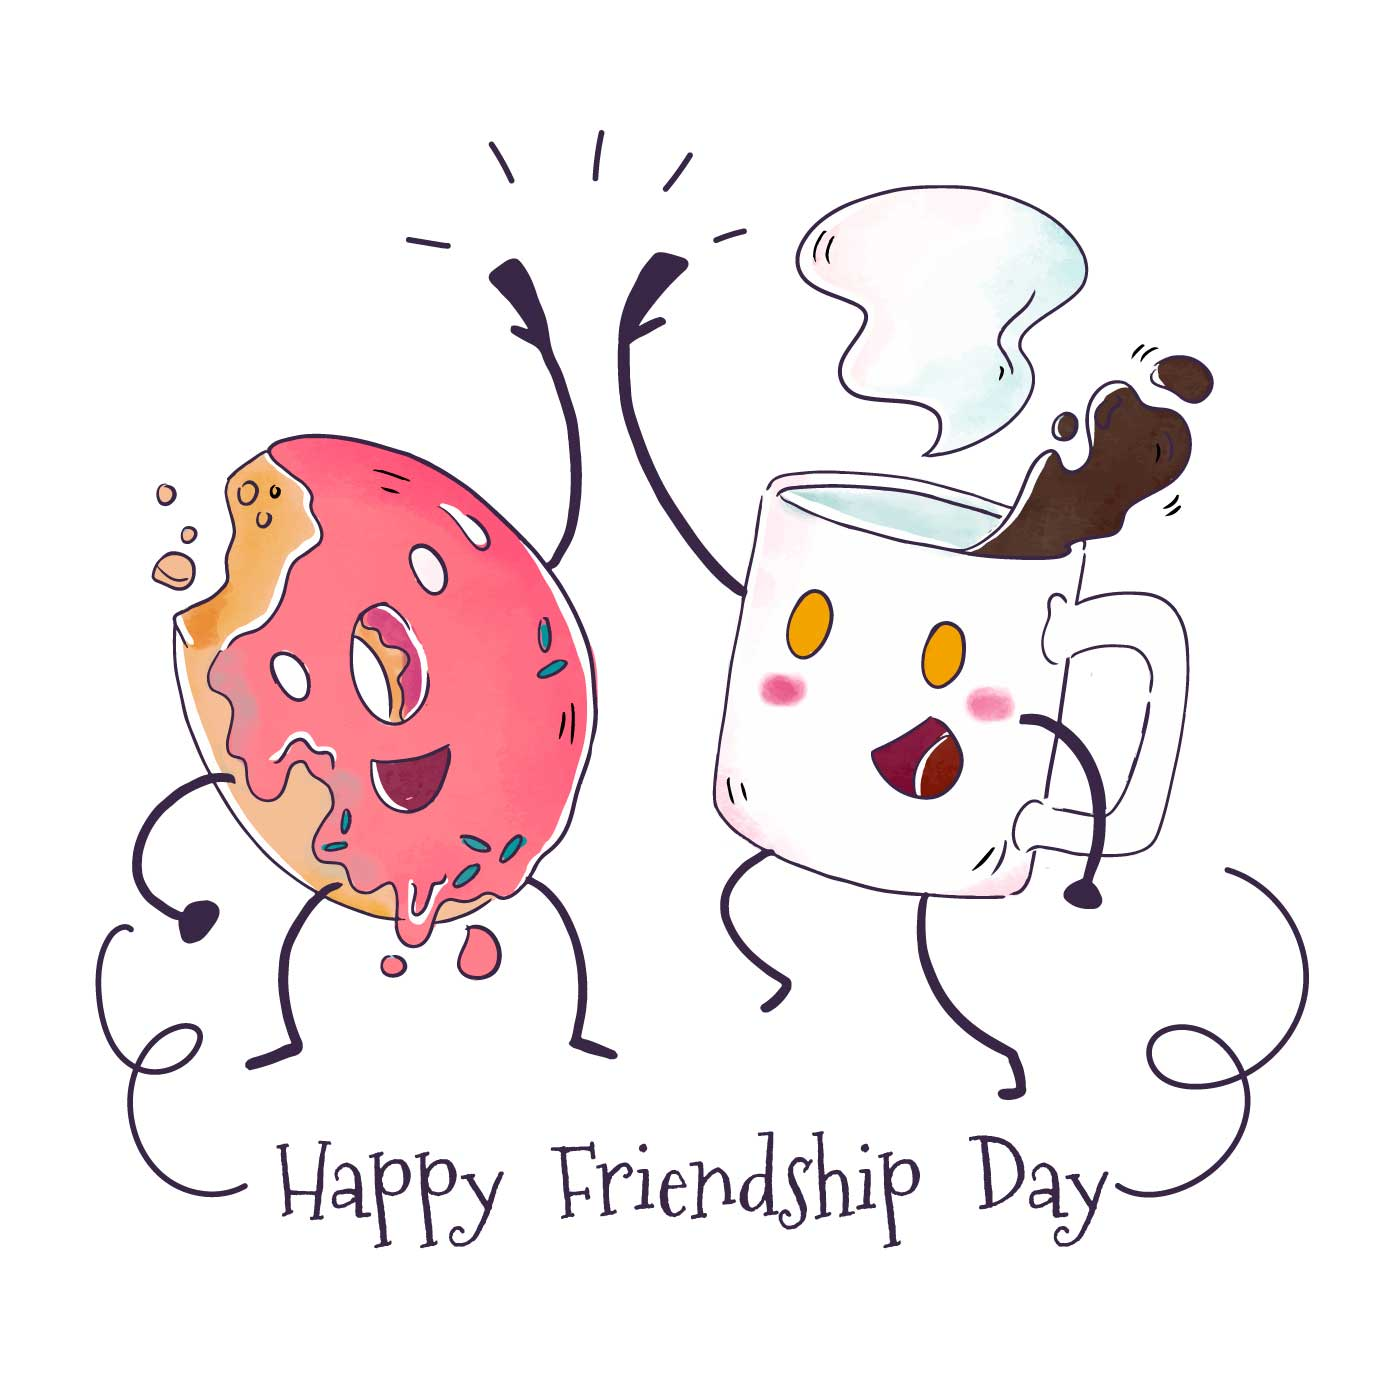 Cute Coffee Mug And Donut Character Playing To Friendship Day Download Free Vectors Clipart Graphics Vector Art